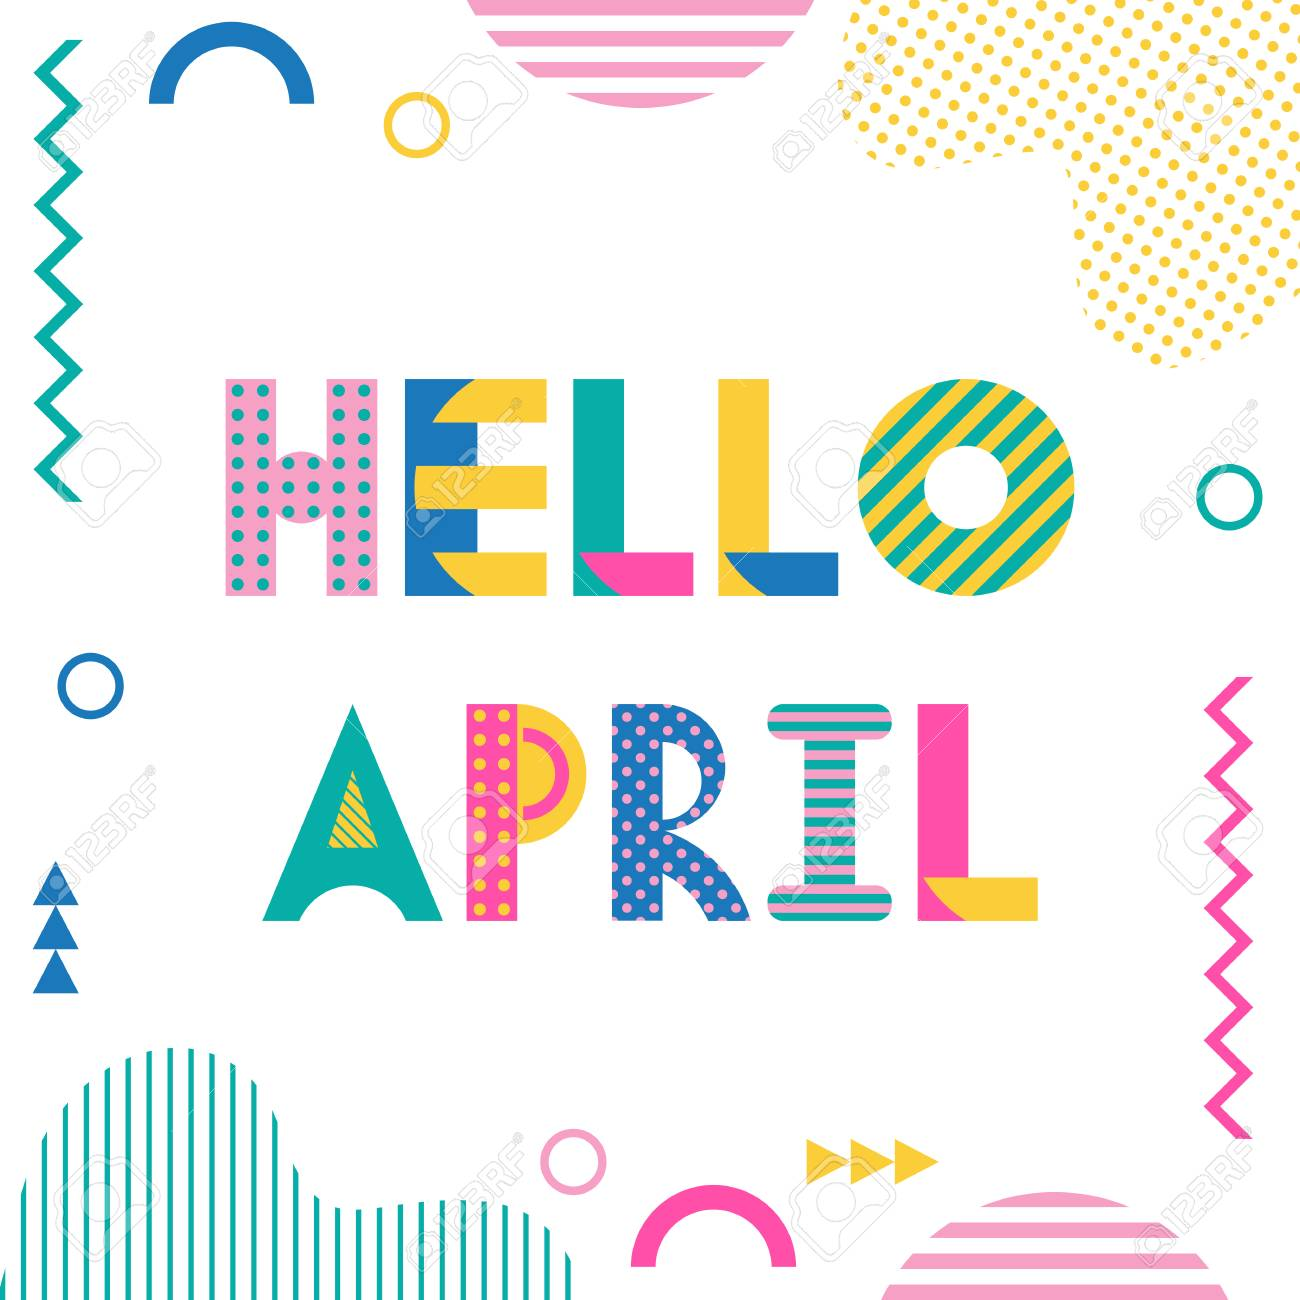 Hello April Trendy Geometric Font In Memphis Style Of 80s 90s Royalty Free Cliparts Vectors And Stock Illustration Image 97330597